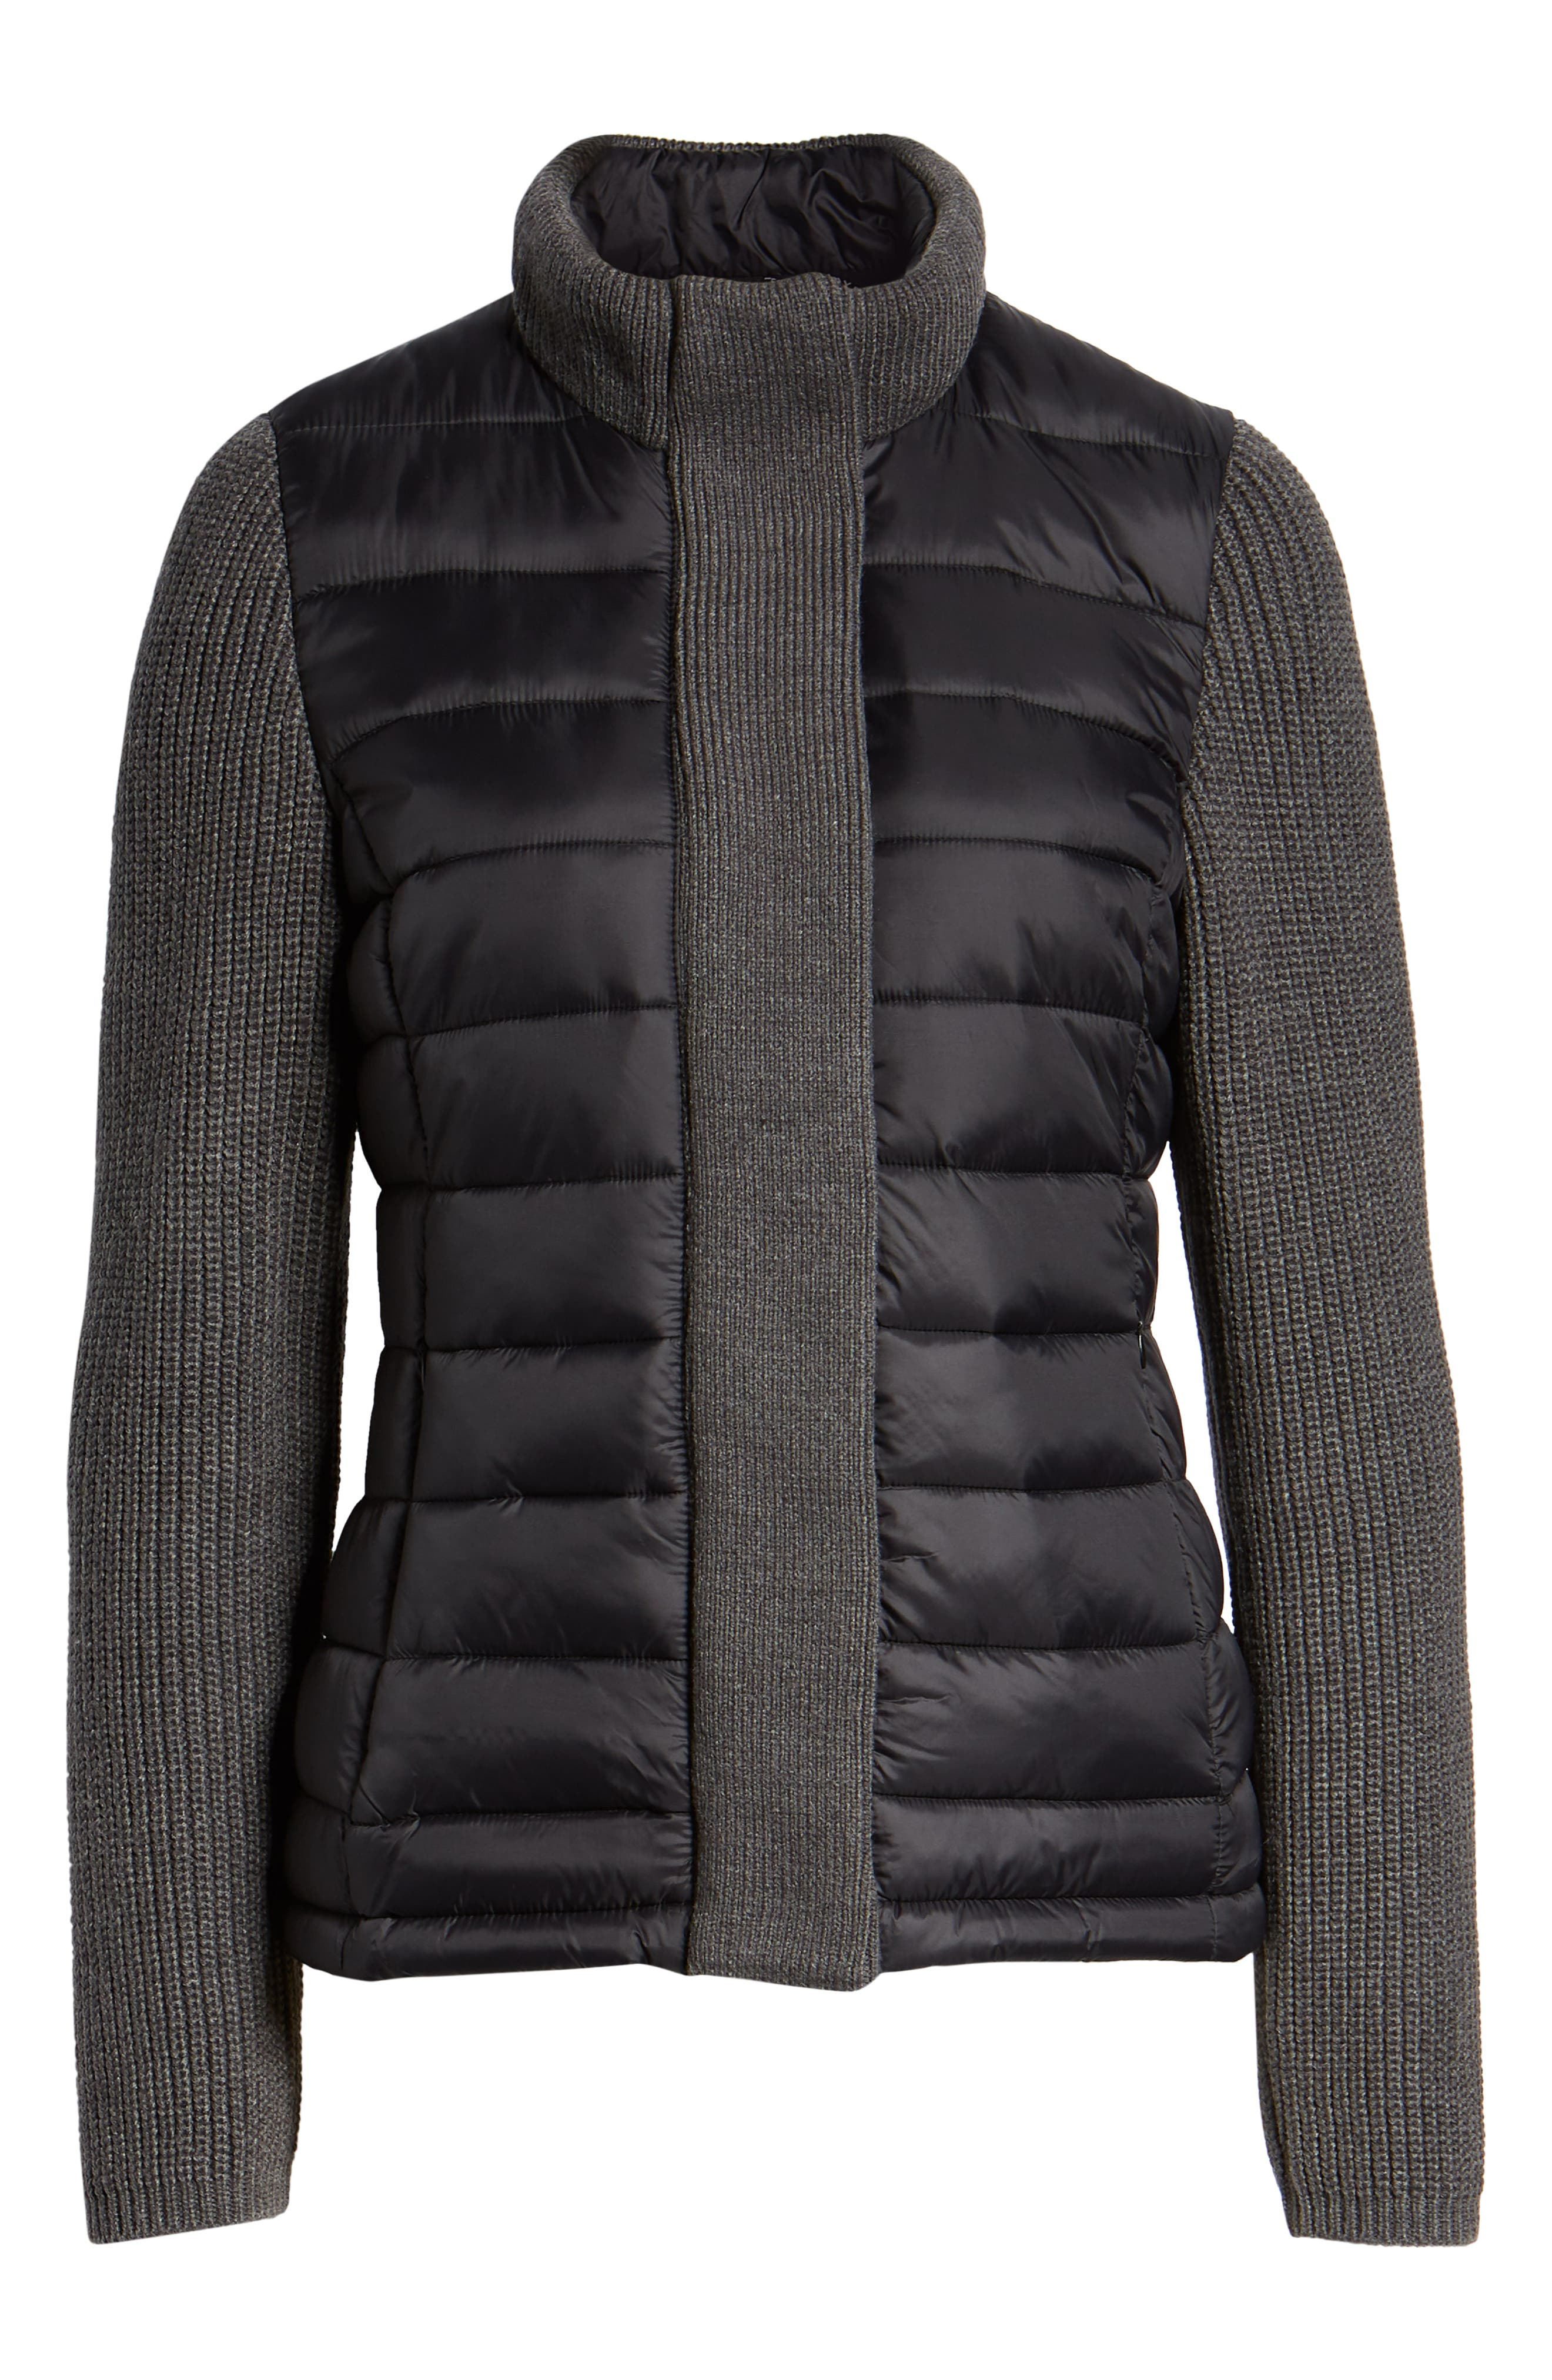 MARC NEW YORK, Mark New York Packable Knit Trim Puffer Jacket, Alternate thumbnail 6, color, BLACK/ GREY